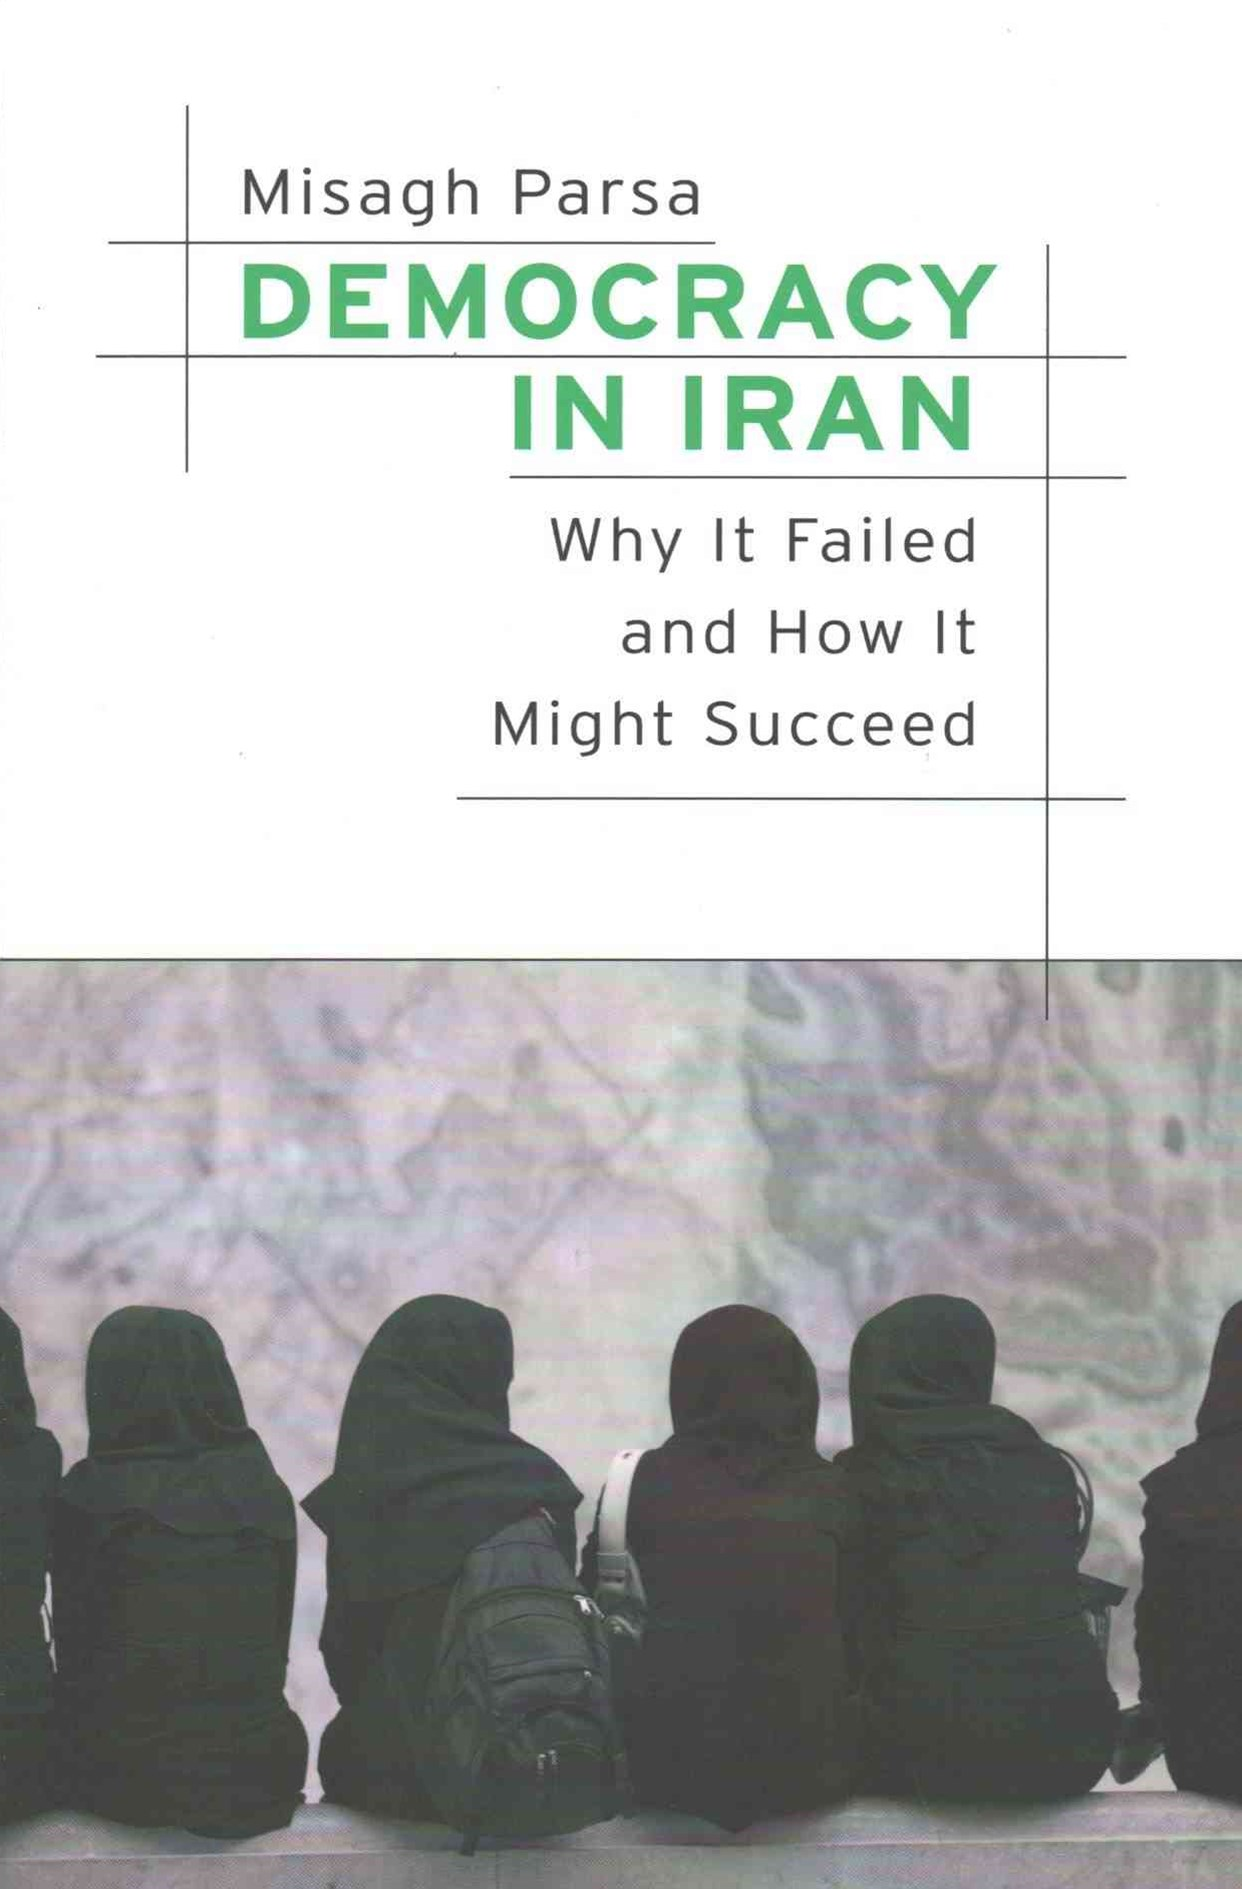 Democracy in Iran - Why It Failed and How It Might Succeed